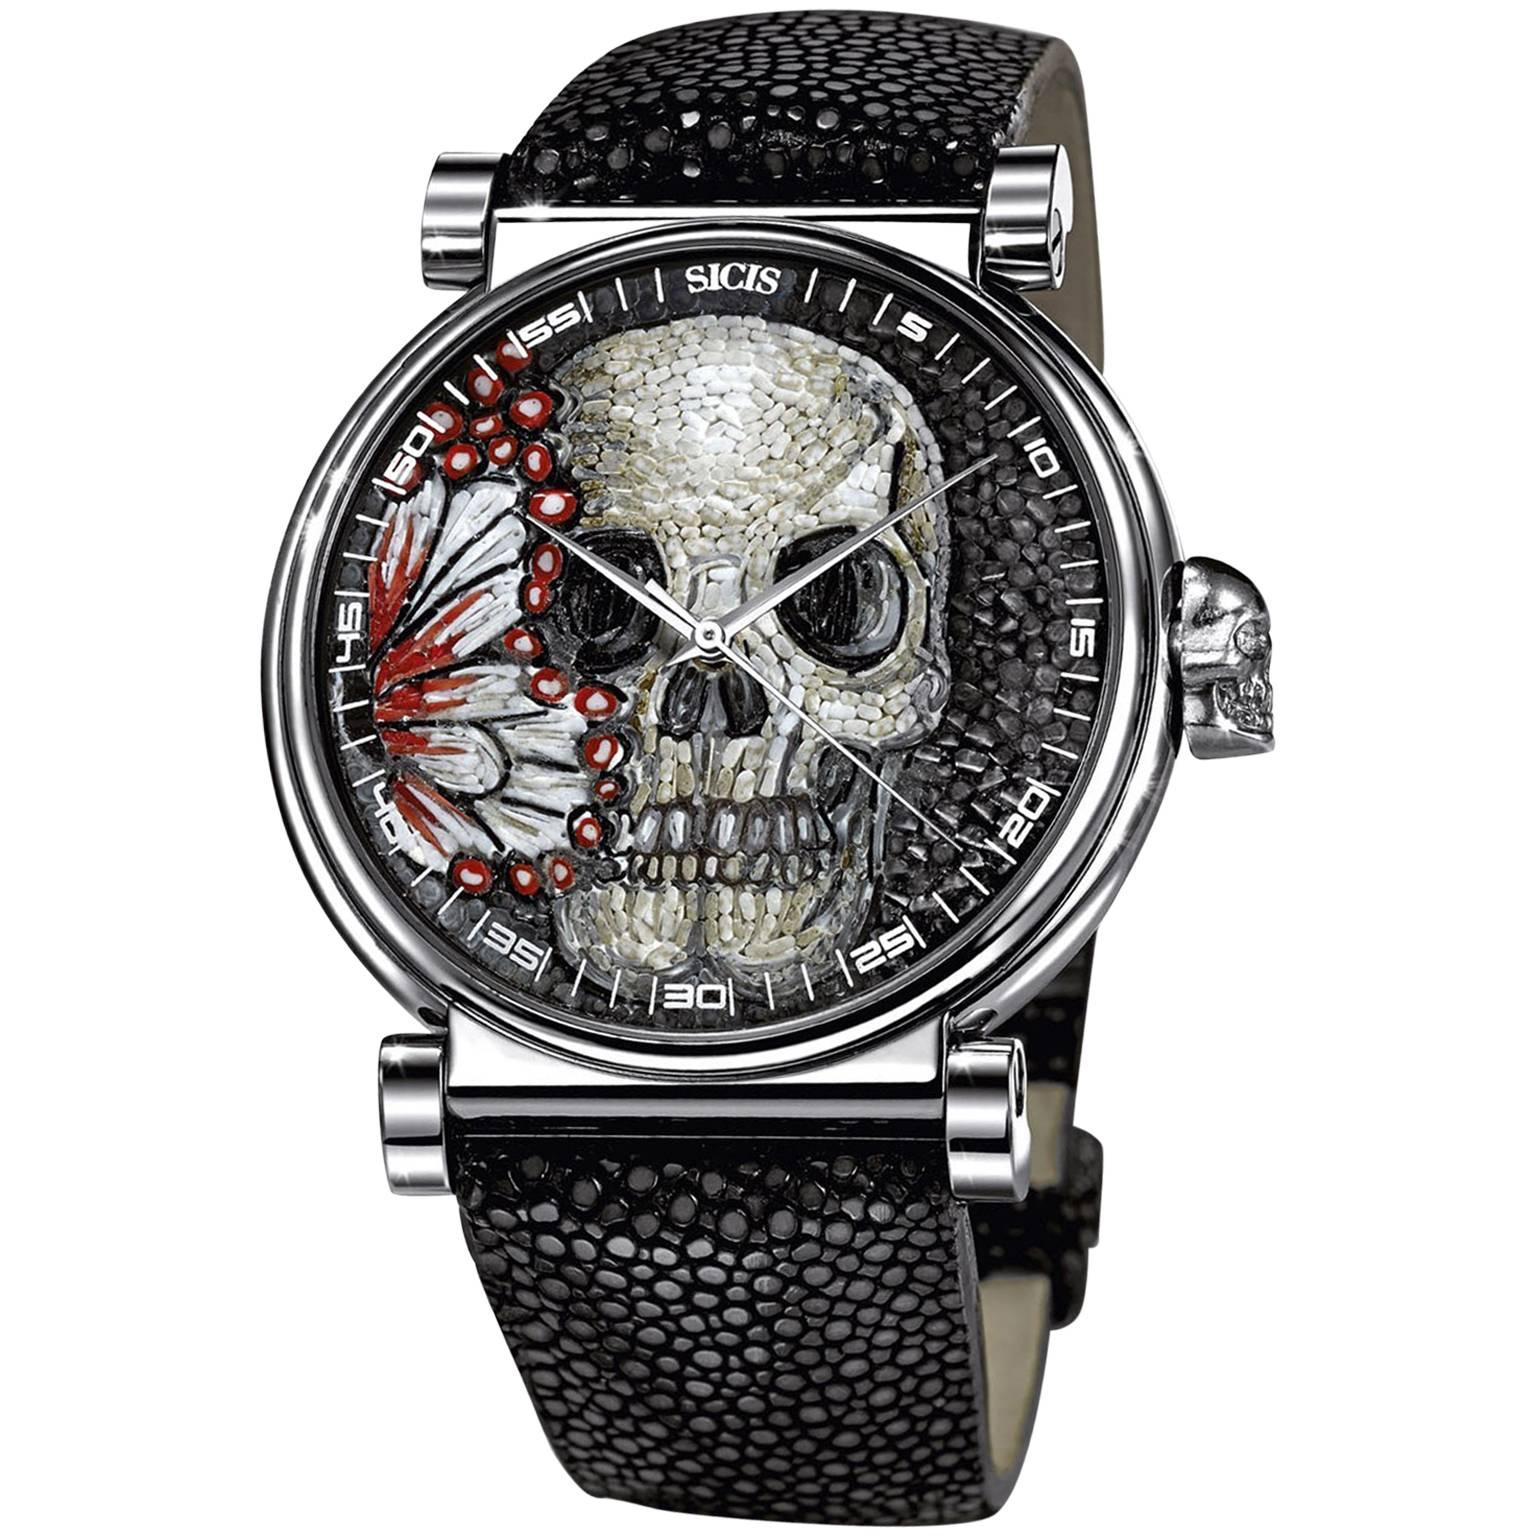 Stainless Steel Automatic Wristwatch Silver Galuchat Strap Decorated Micromosaic